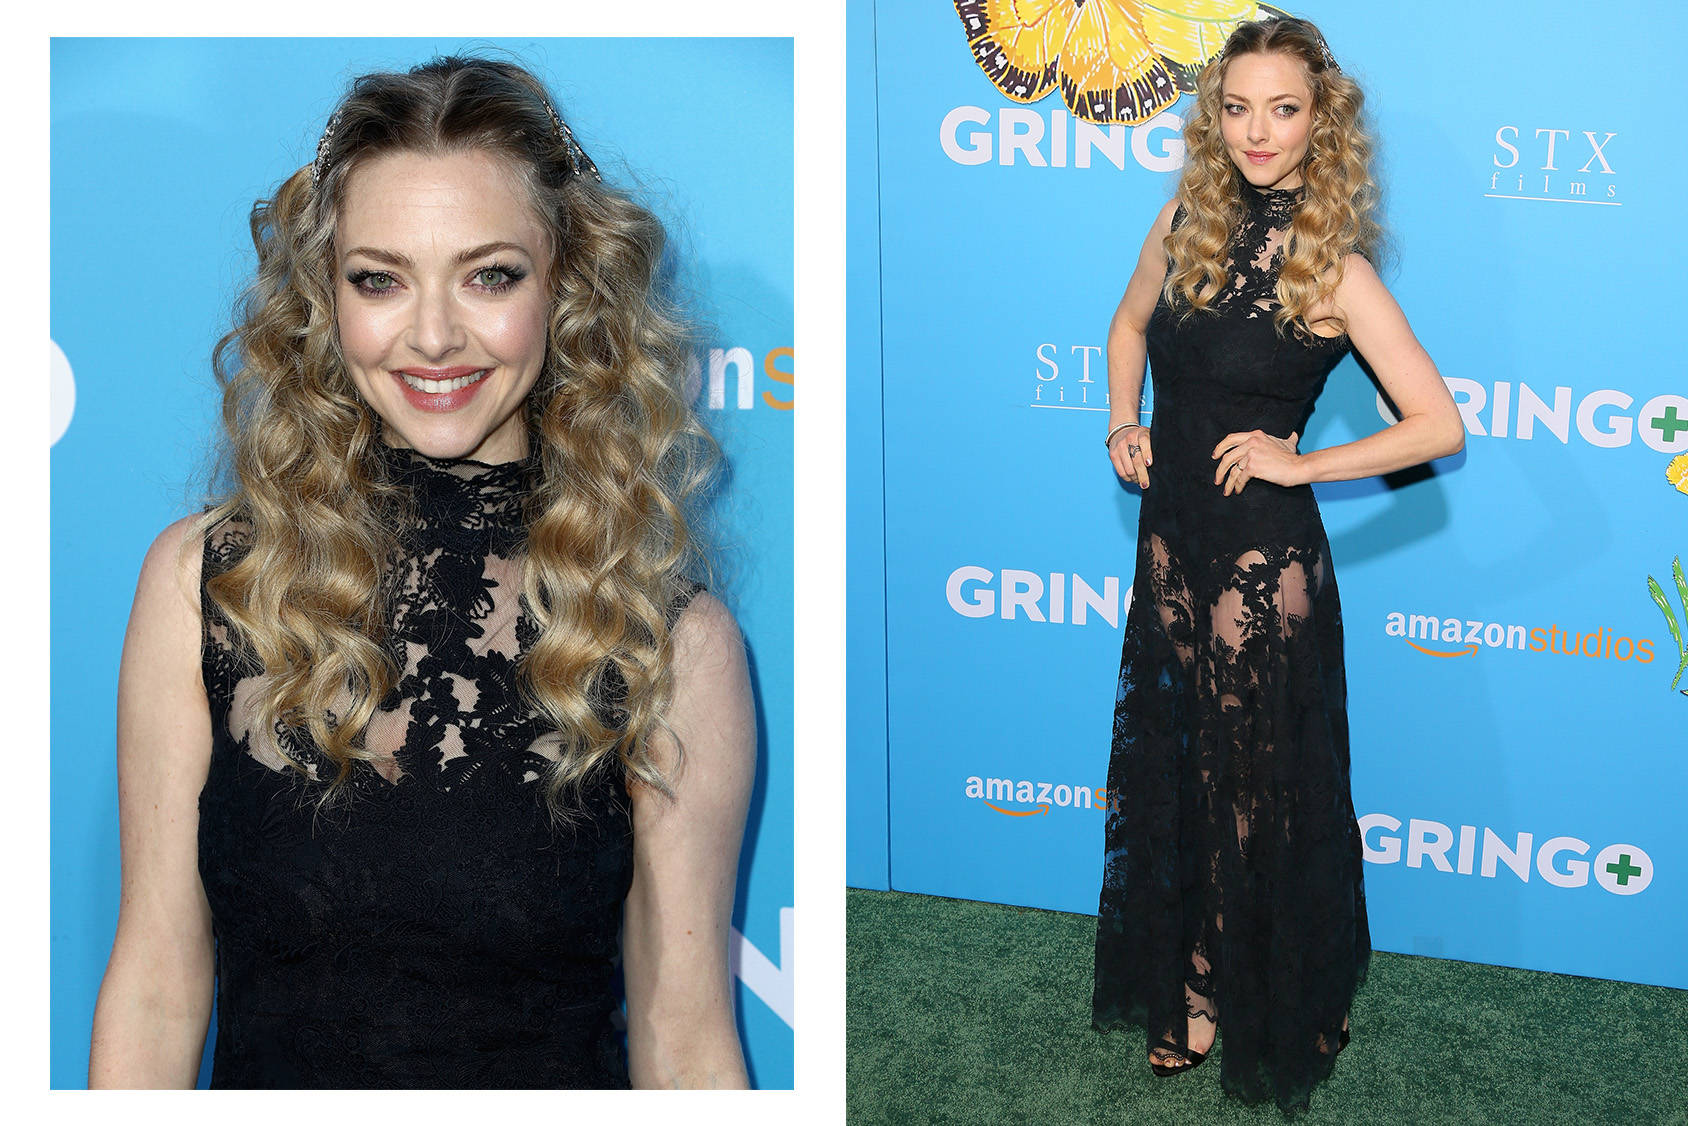 Amanda Seyfried in custom Conscious Exclusive look